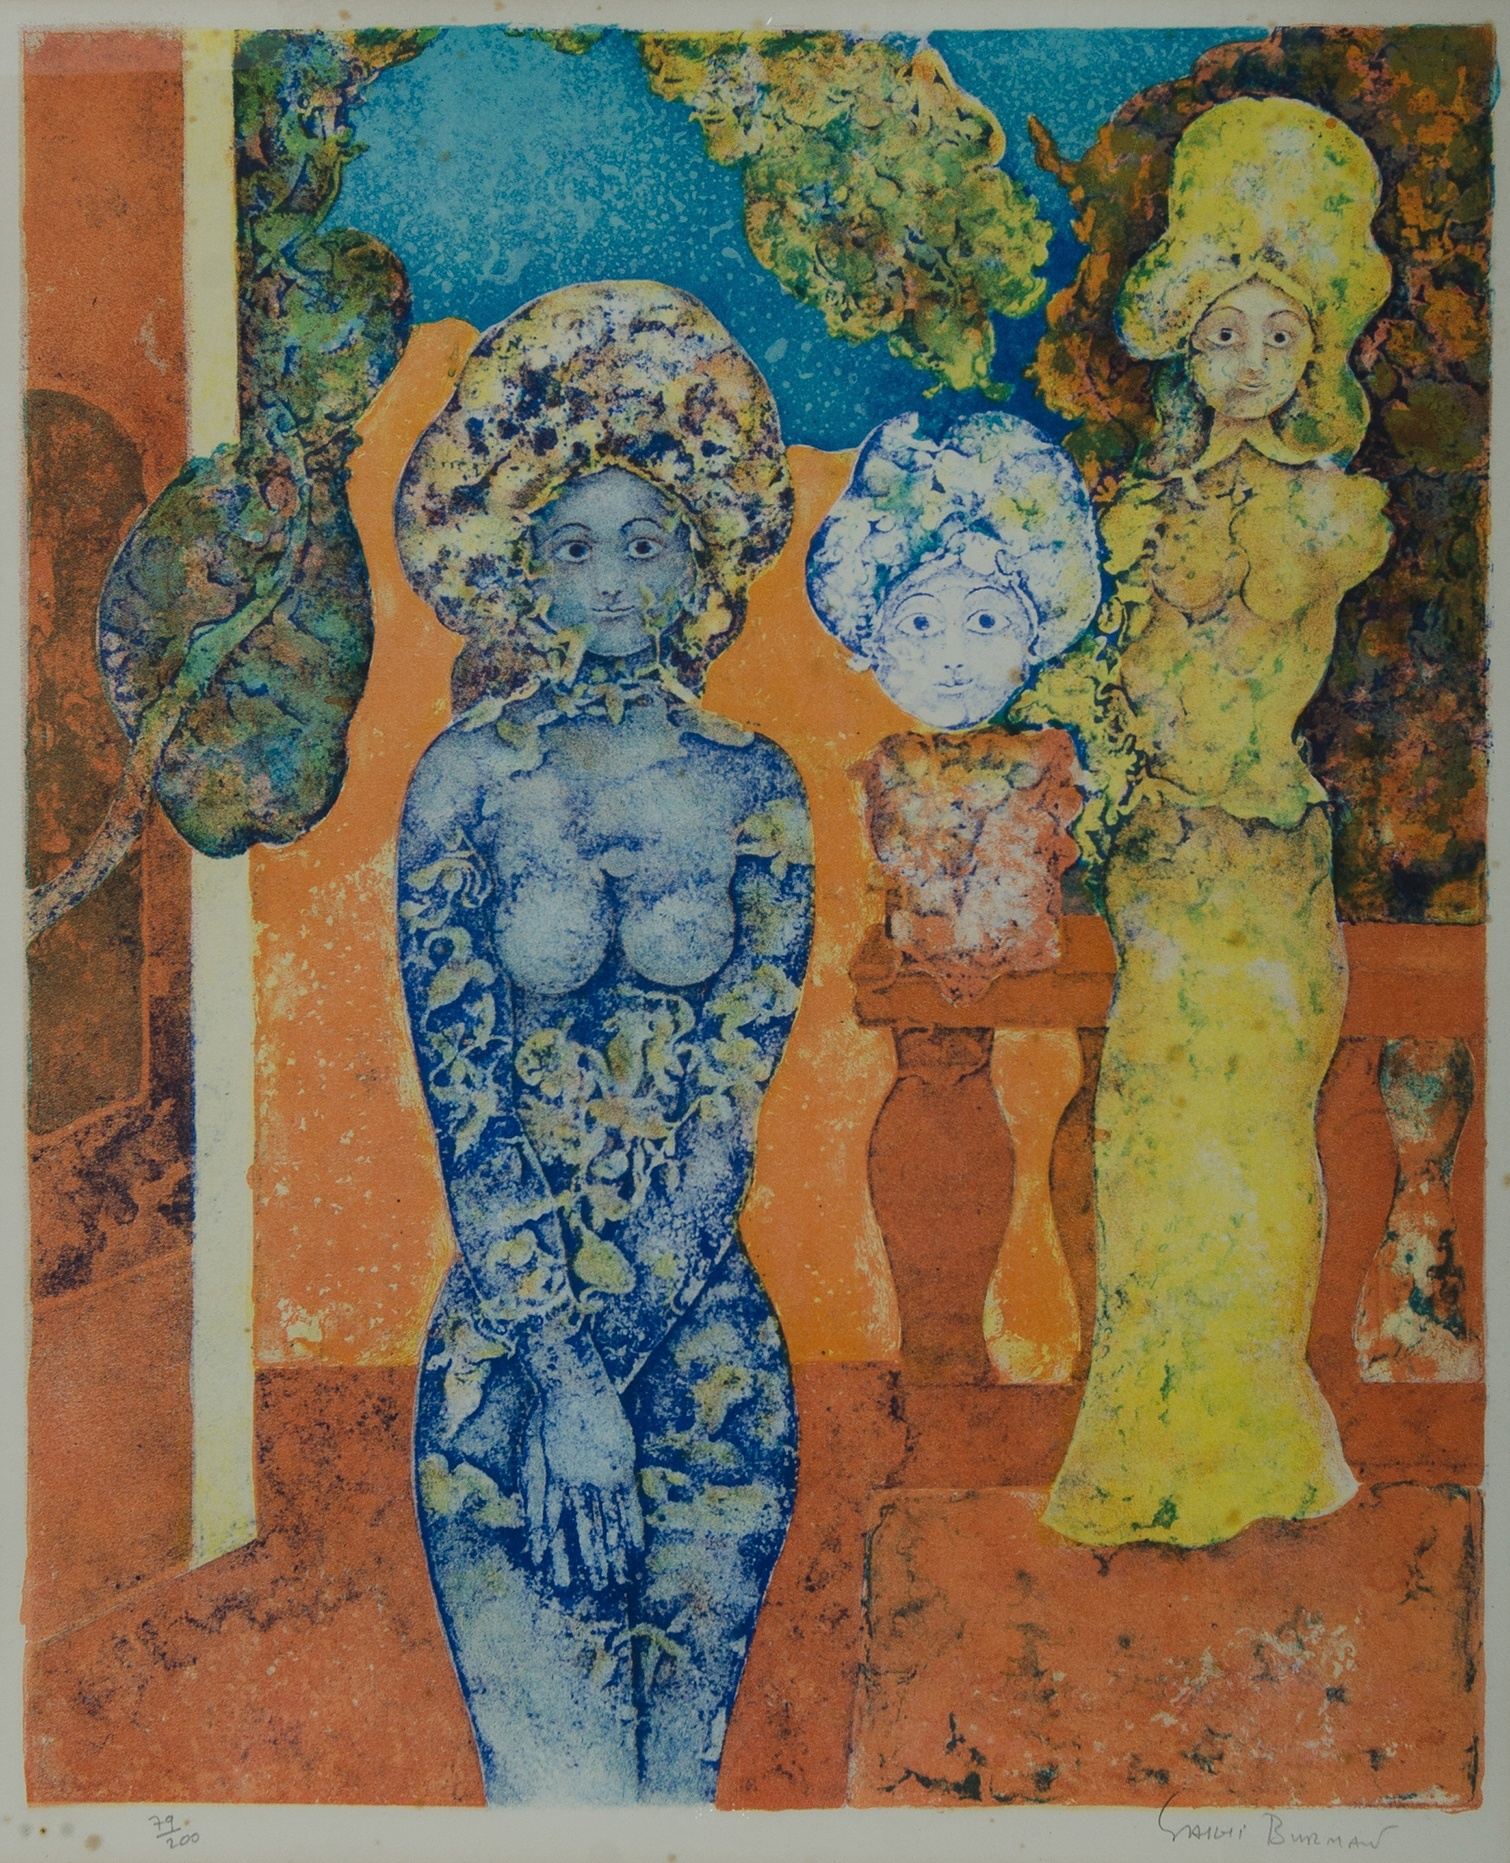 'Sakti BURMAN (Indian b.1935) Untitled, Lithograph 99/200 '